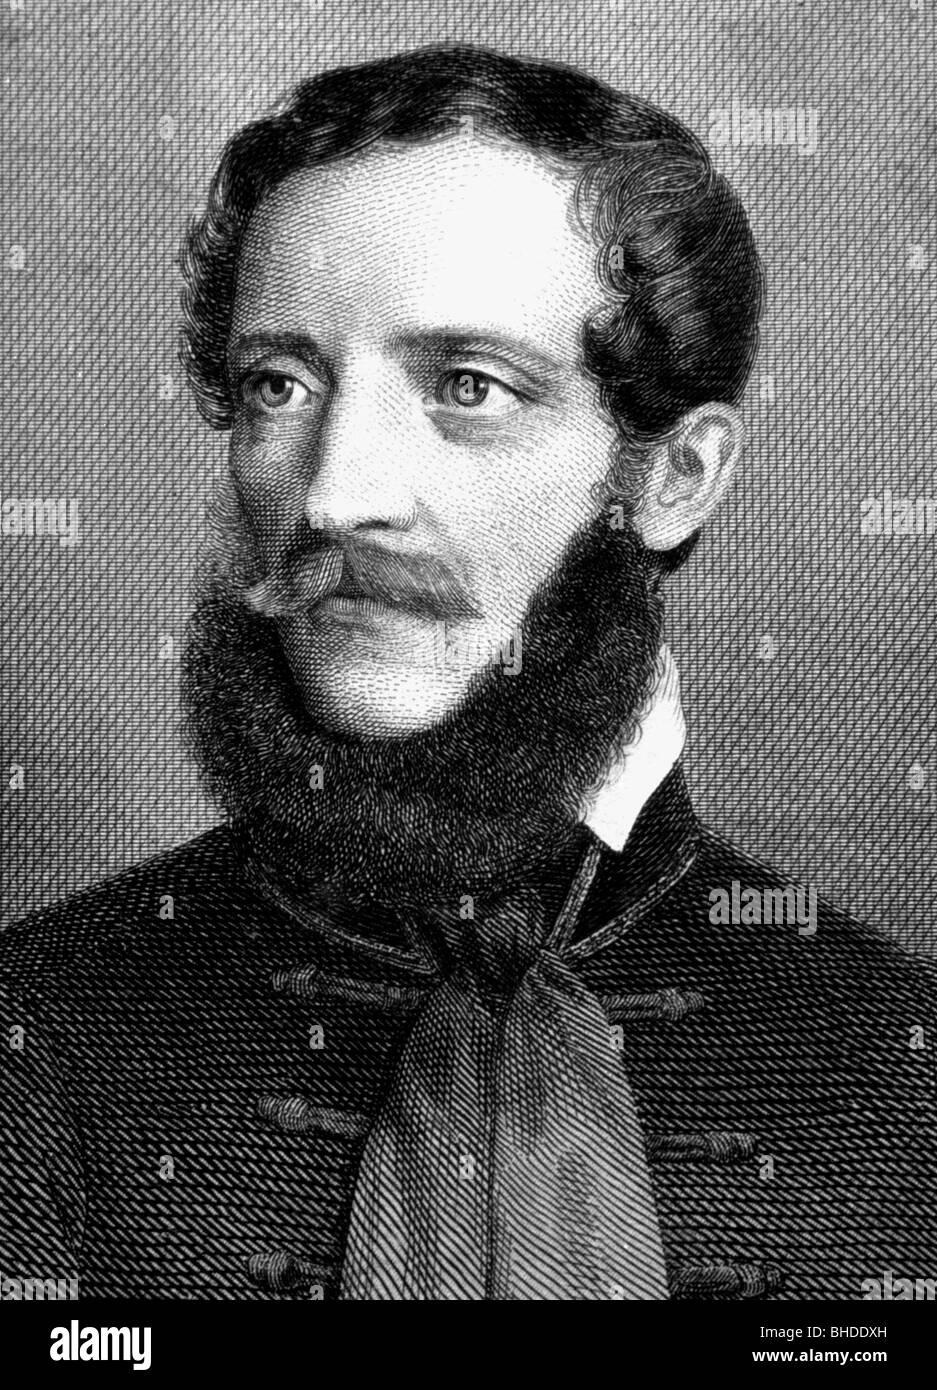 Kossuth, Lajos, 16.9.1802 - 20.3.1894, Hungarian politician, portrait, copper engraving, circa 1850, Artist's Copyright Stock Photo